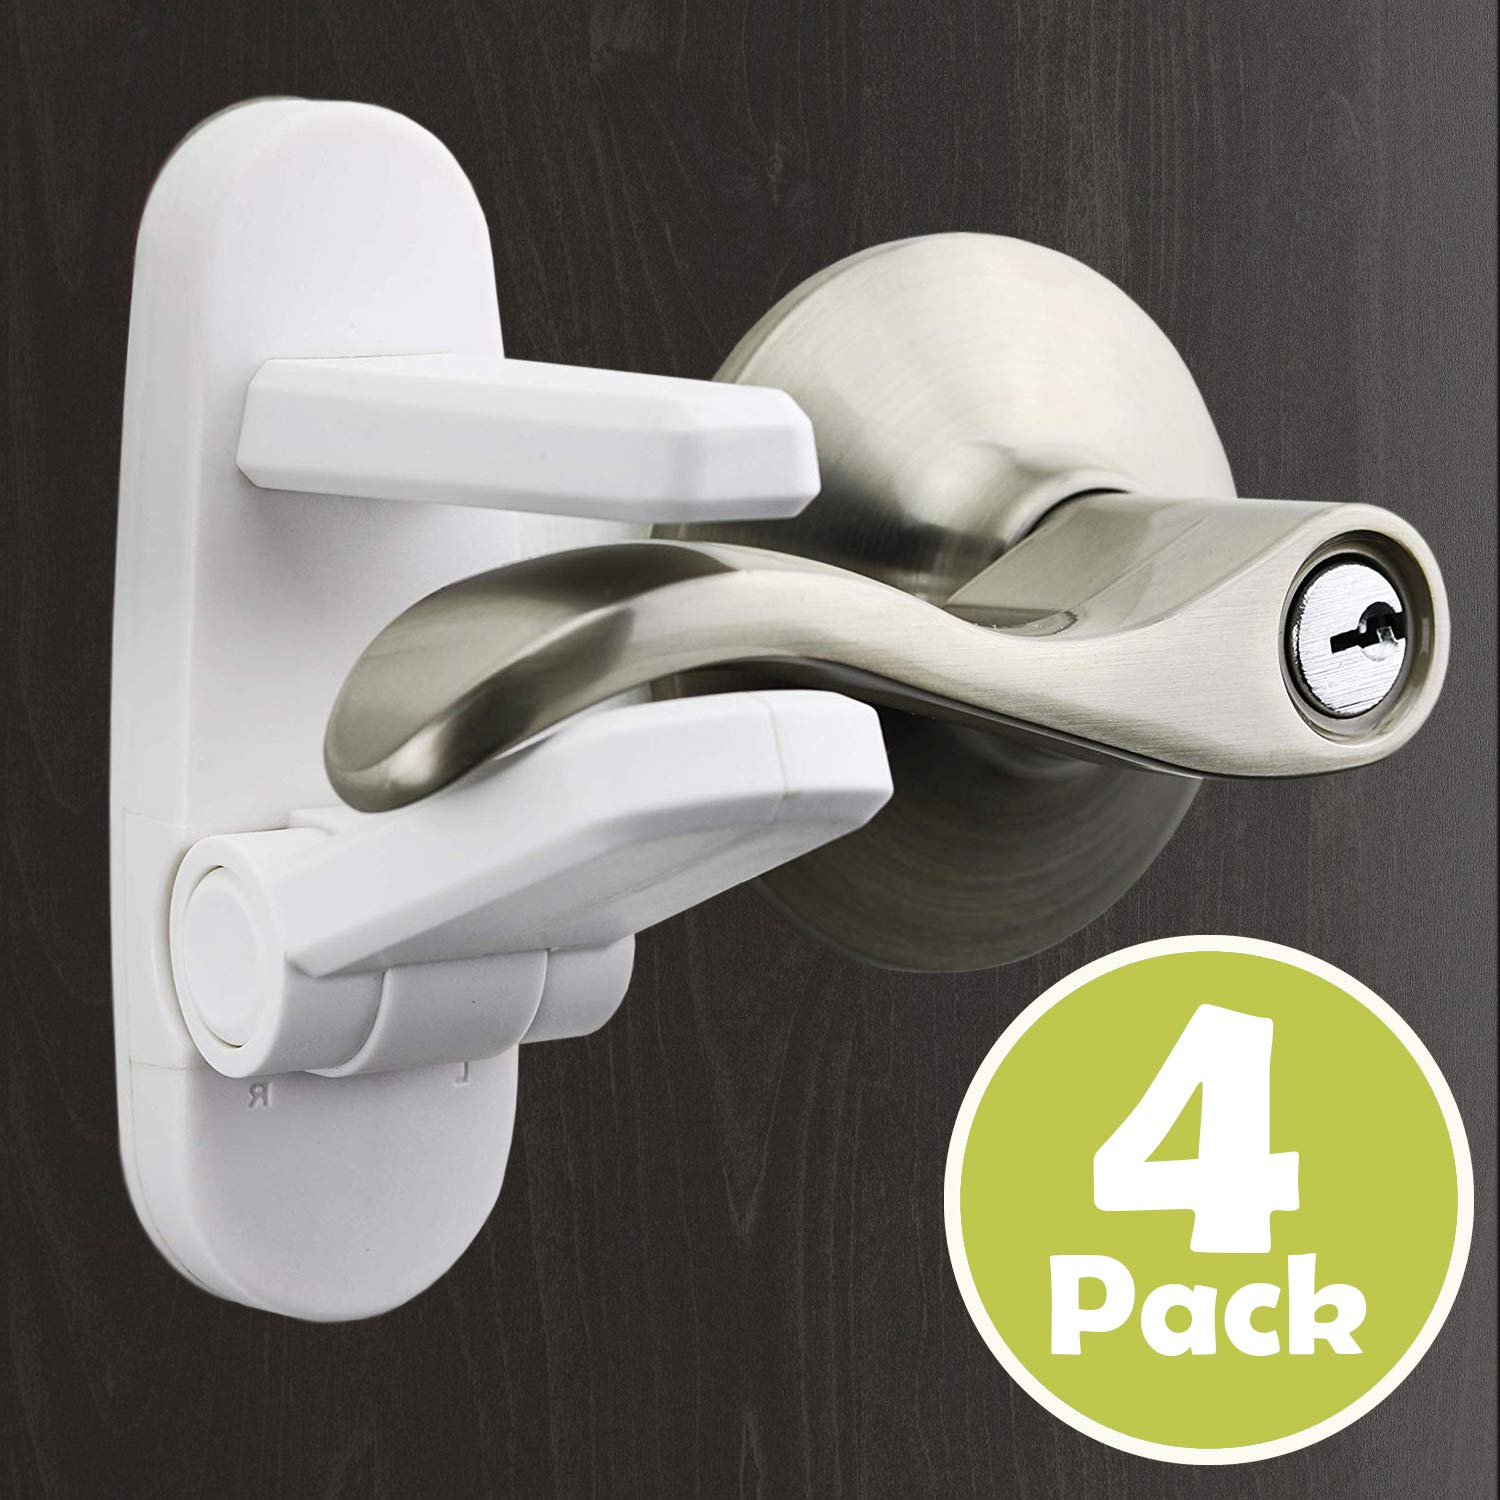 Outsmart Childproof Door Lever Lock[4 Pack] - Child Safety Baby Proofing Door Handle Lock for Kids, Durable ABS Made with 3M Adhesive, Easy One Hand Operation & Tool Free Installation.